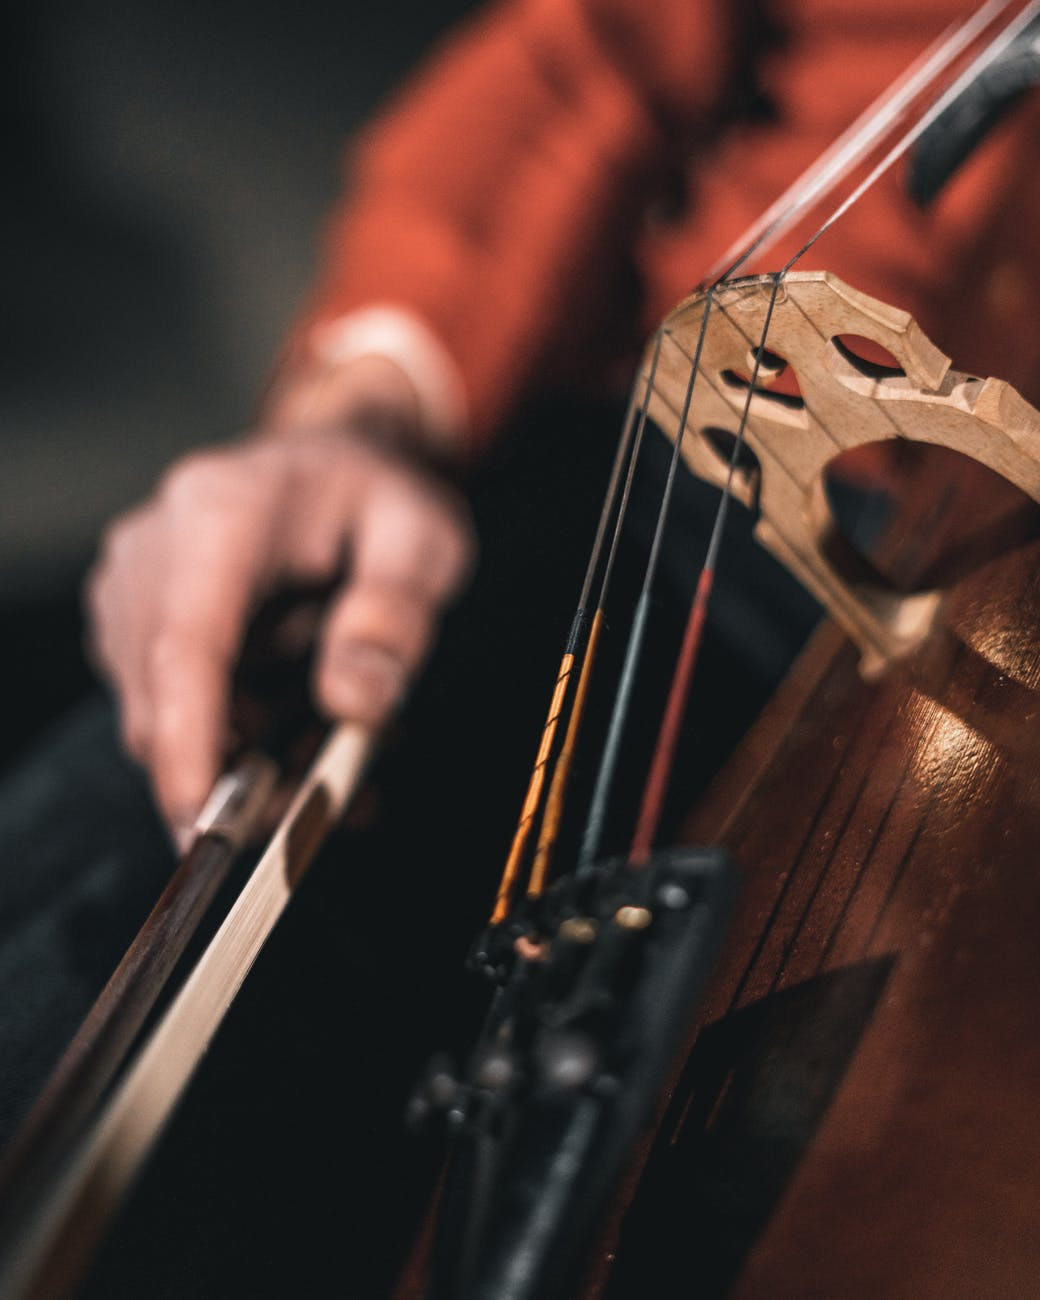 person playing stringed instrument